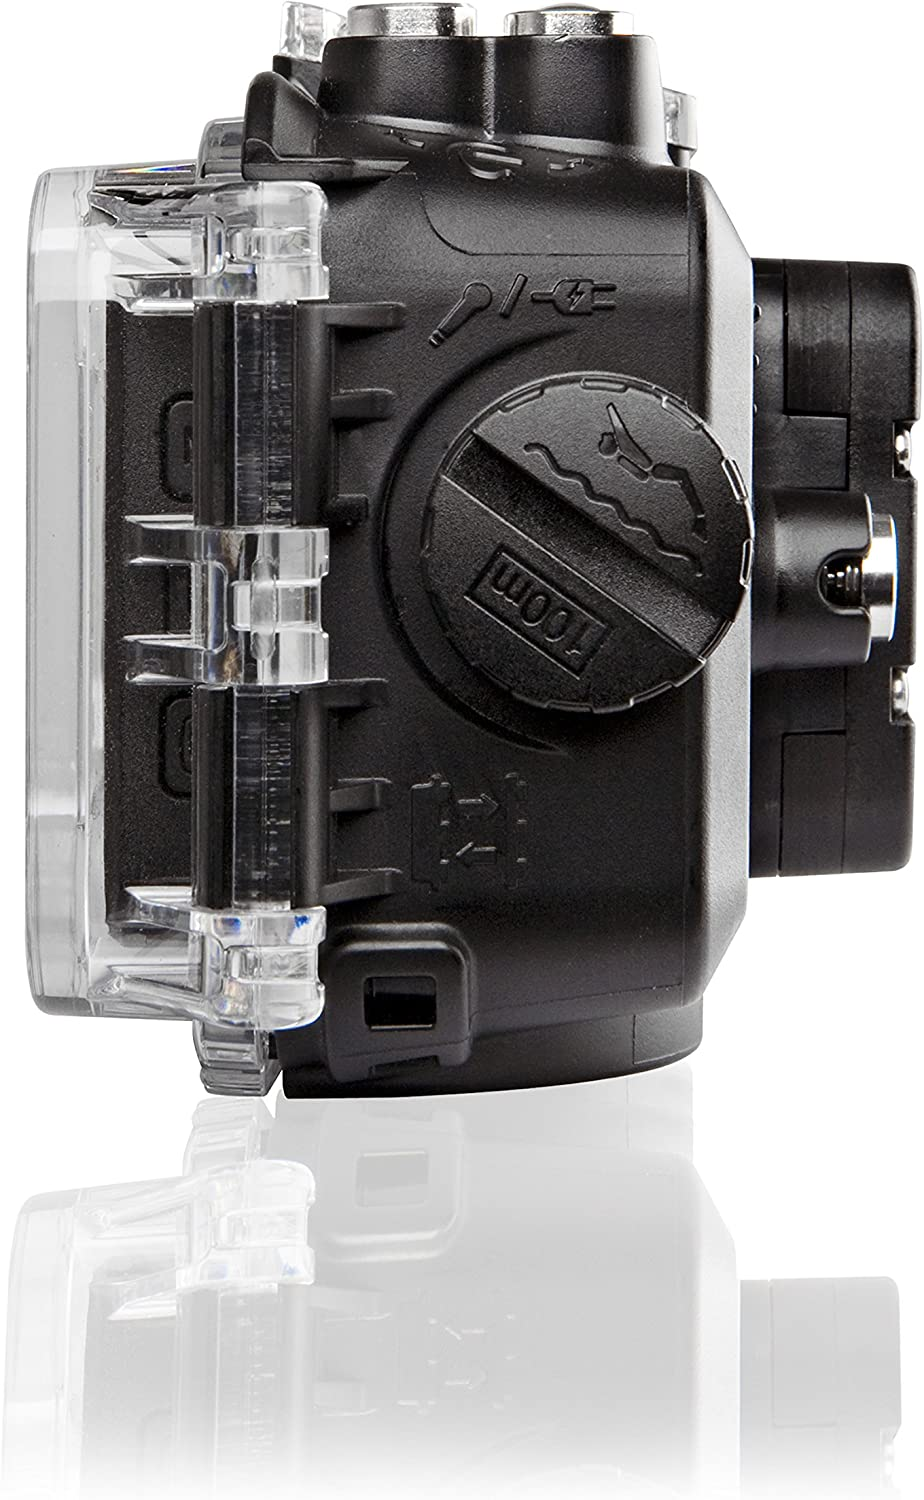 Black Veho VCC-A035-WPC Waterproof Case for MUVI K Series Video Camera